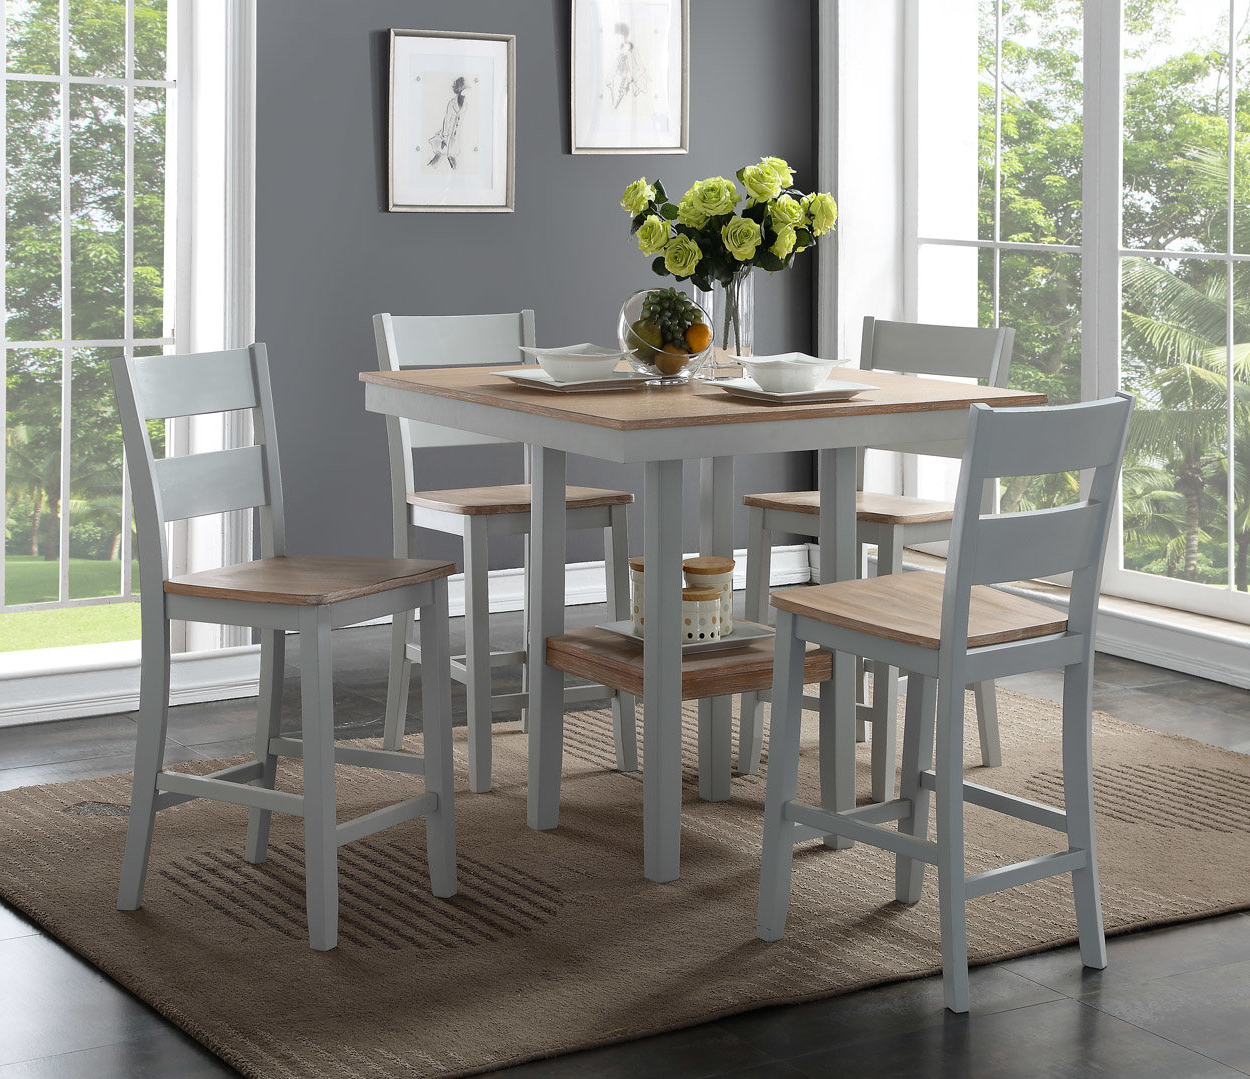 Recent August Grove Liesel Counter 5 Piece Breakfast Nook Solid Wood Dining With Regard To 5 Piece Breakfast Nook Dining Sets (View 10 of 25)